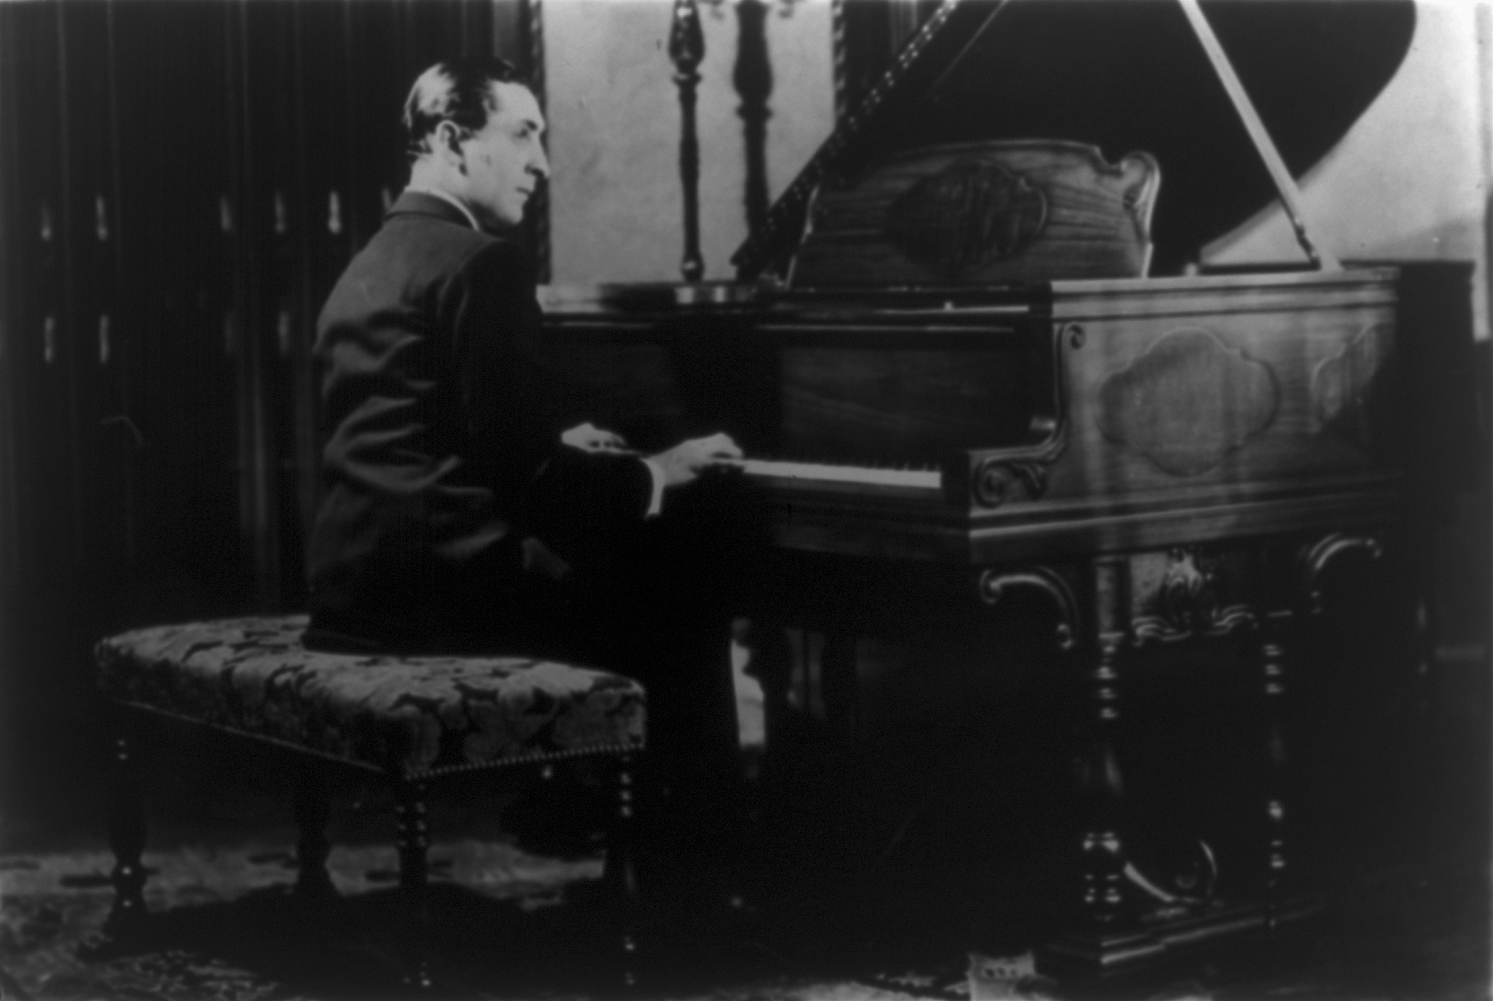 Vladimir Horowitz, seated at the piano. From the Library of Congress